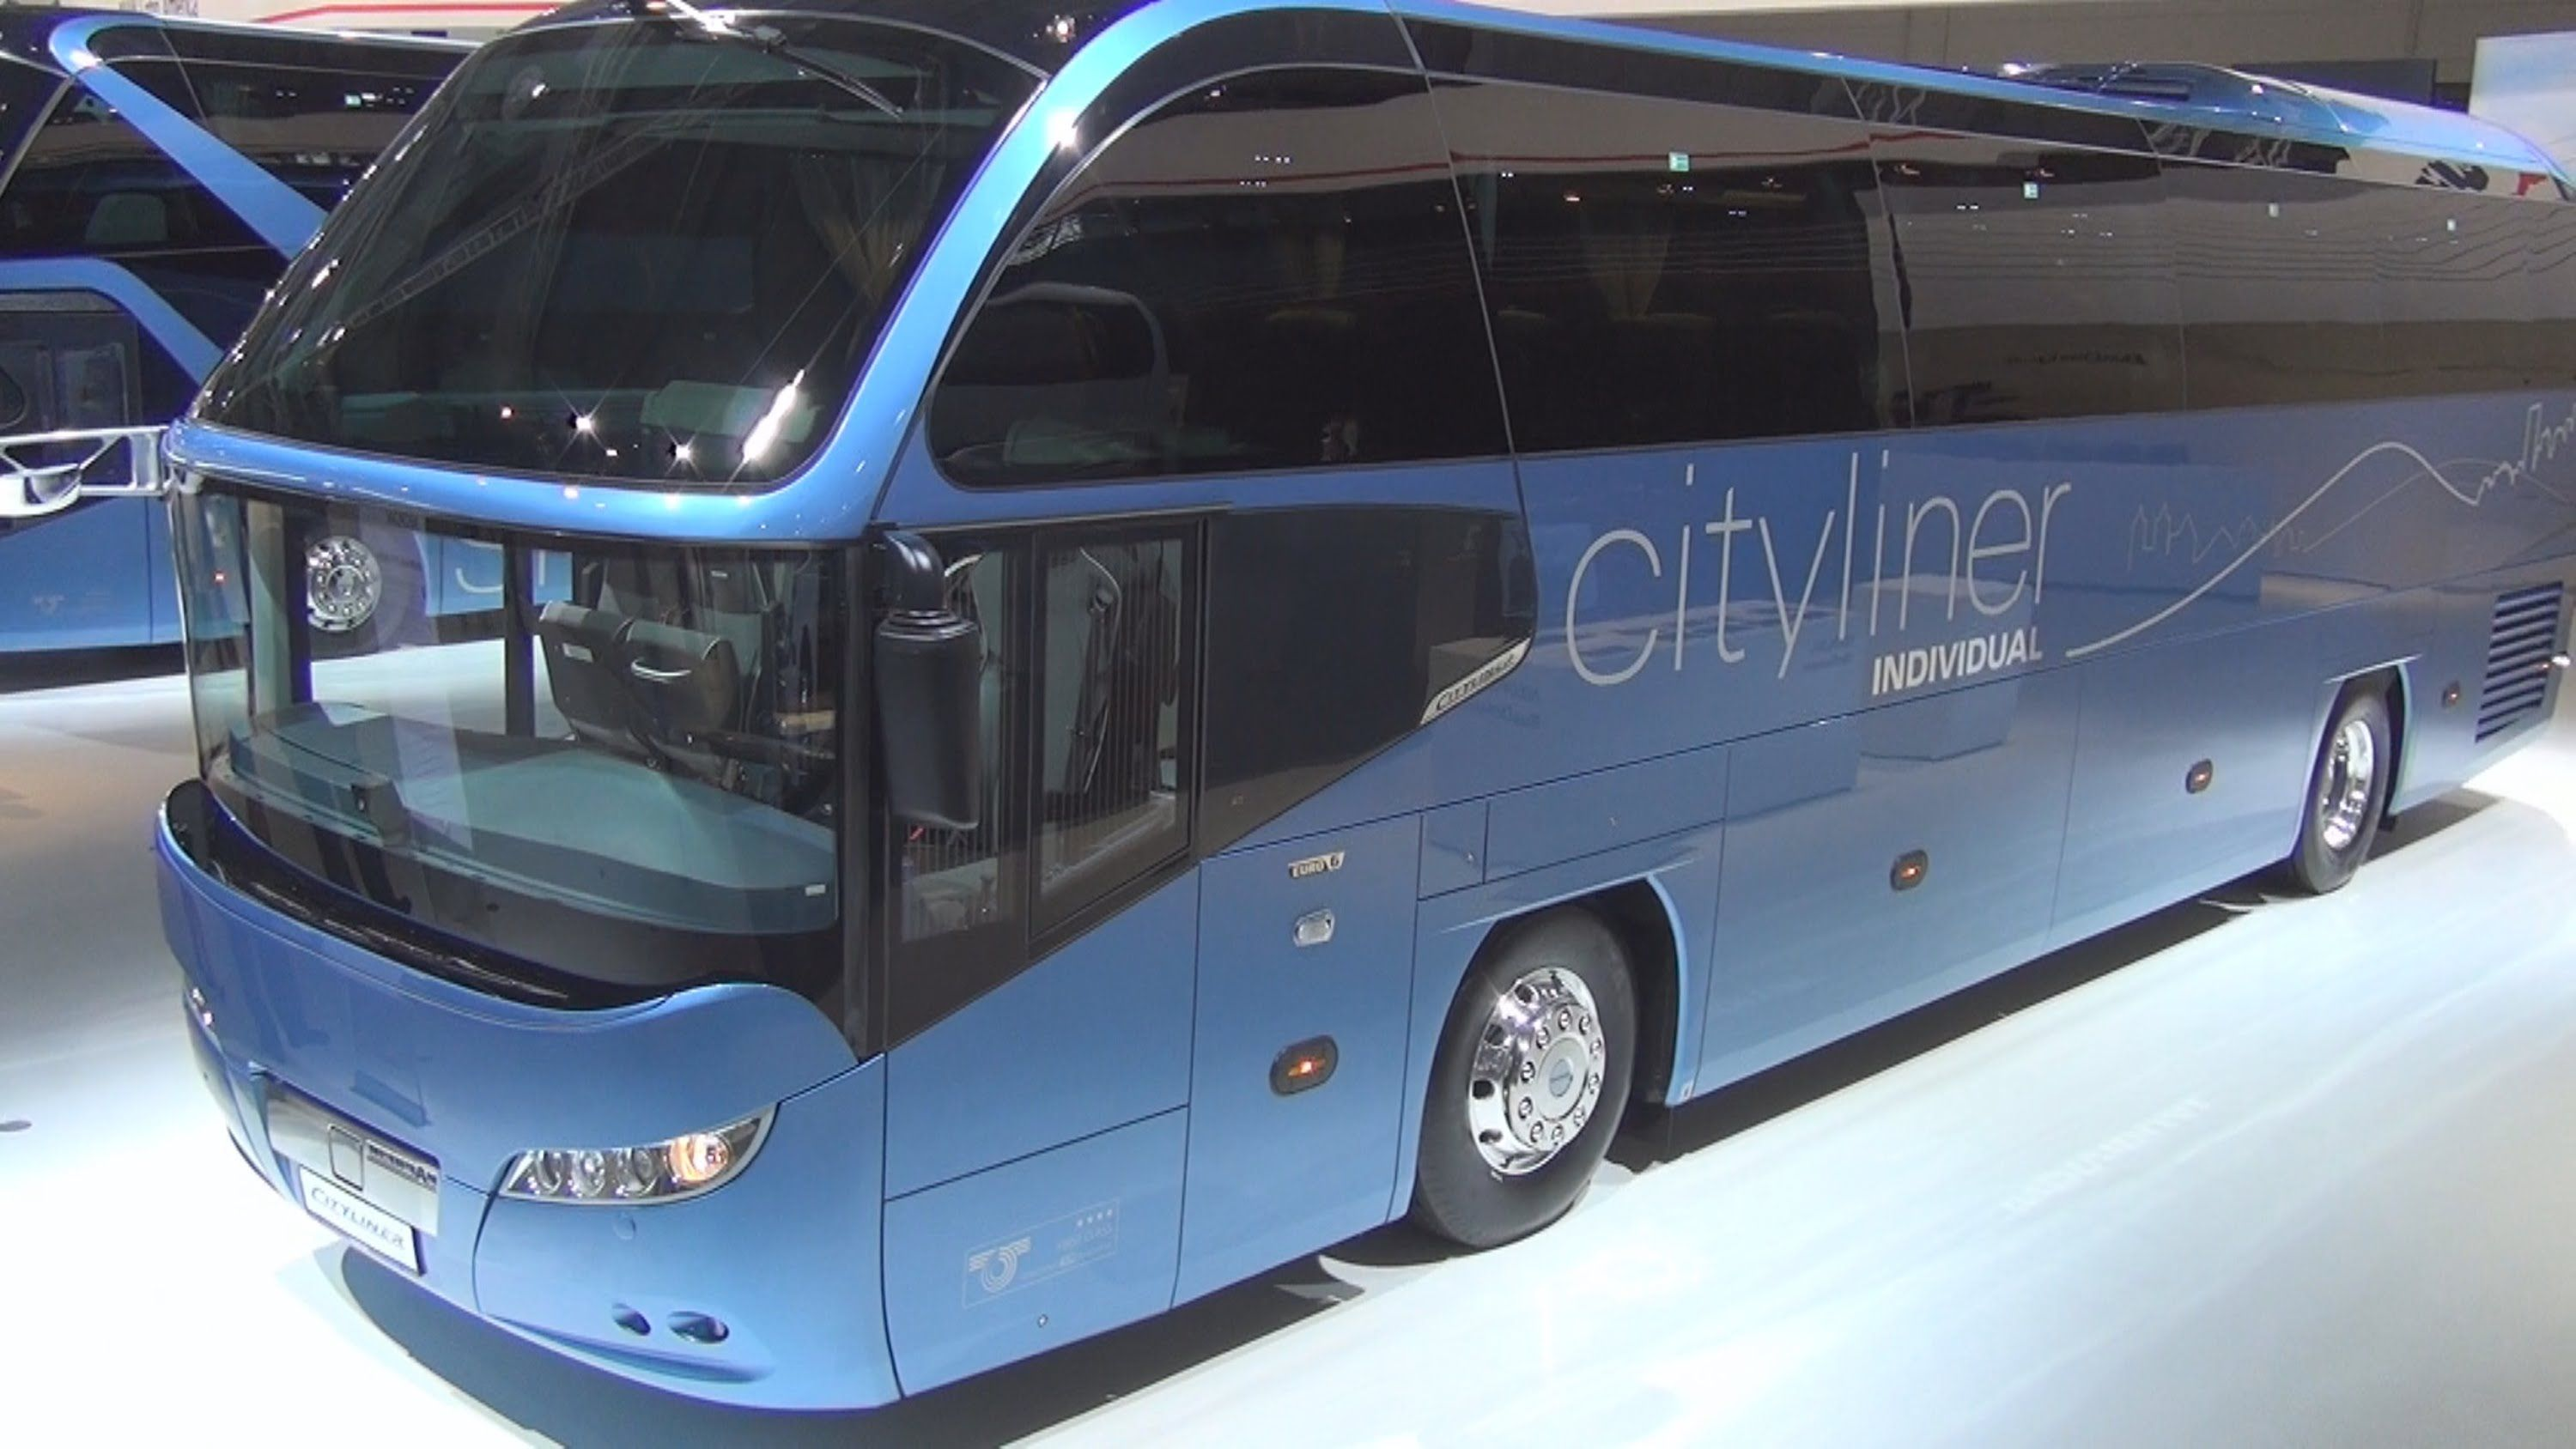 Neoplan Cityliner Bus | Cars | Vehicles, Cars, Exterior